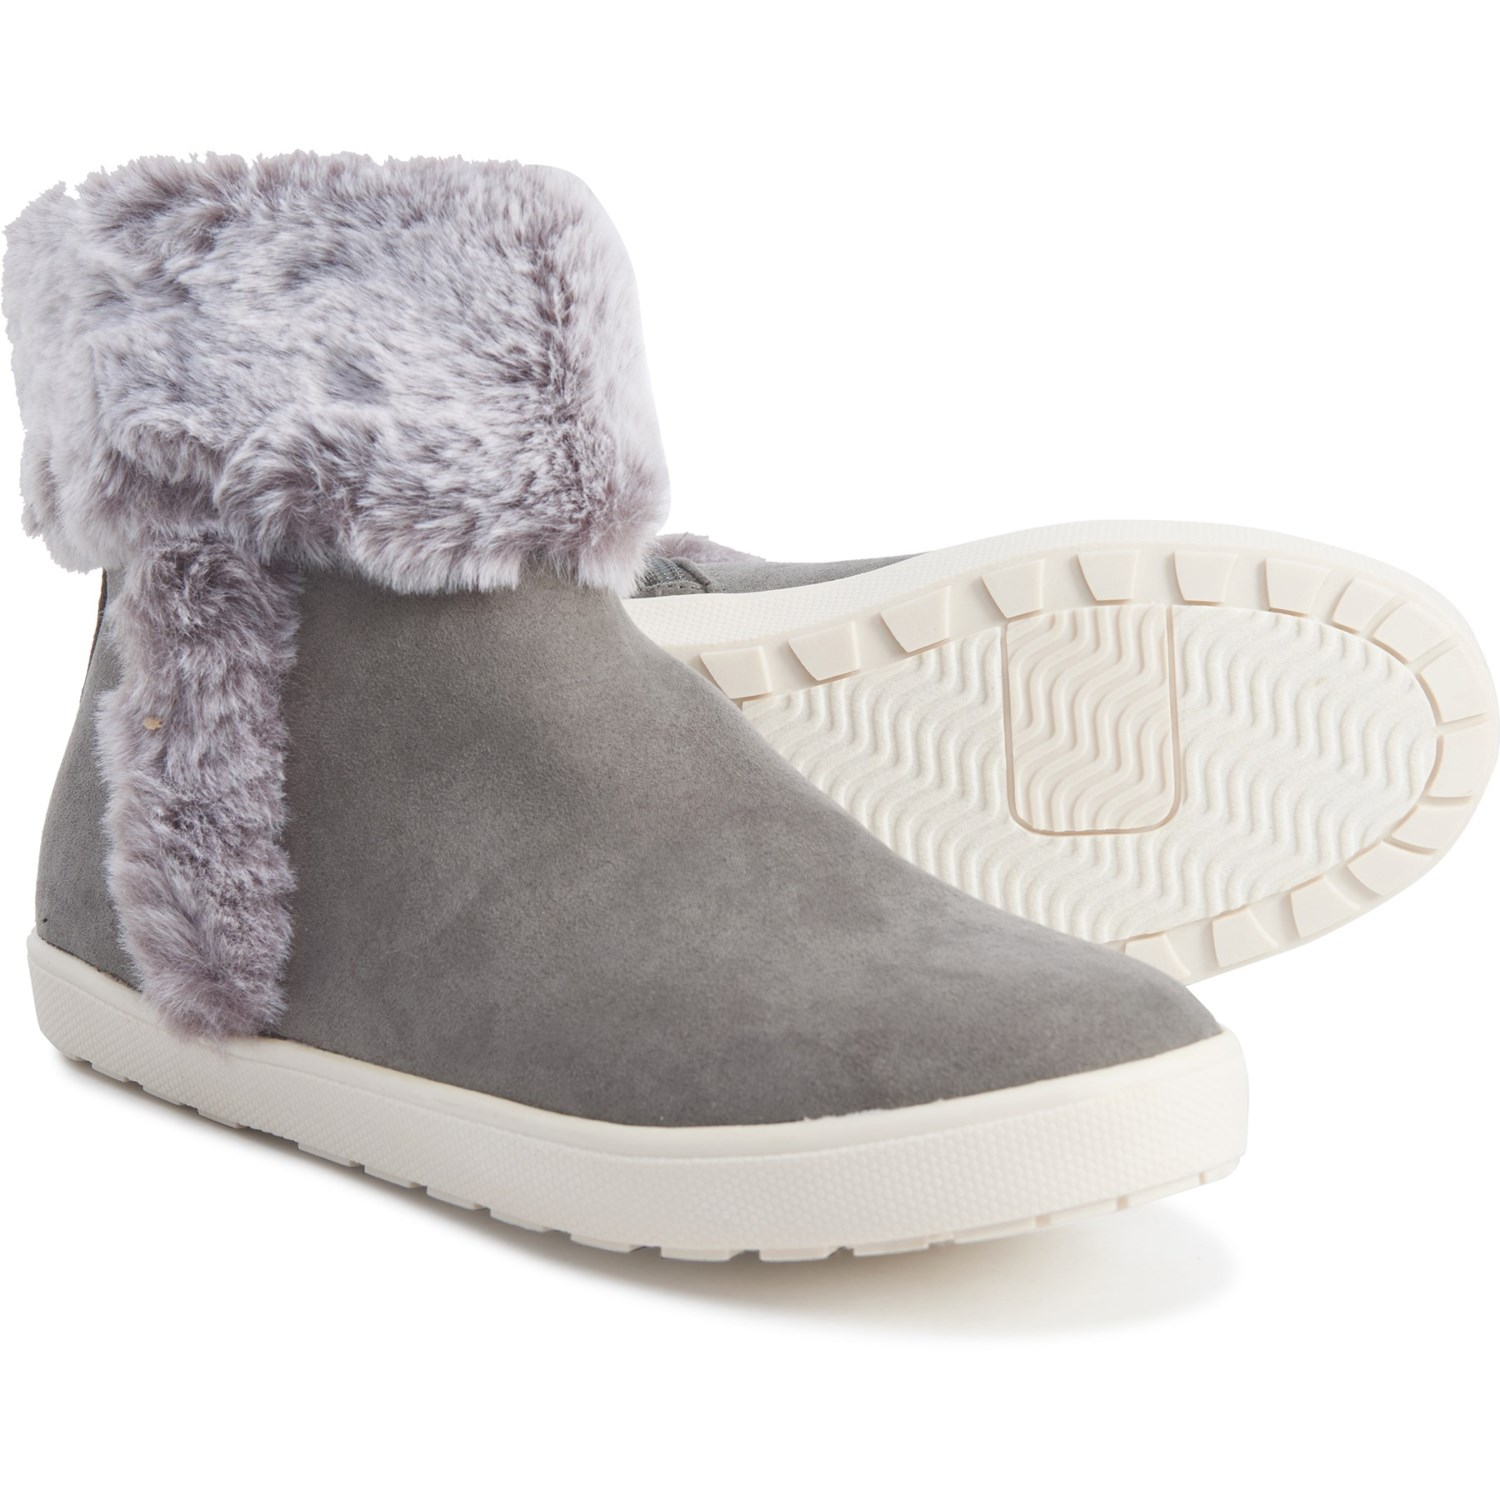 Sugar Marshmallow Pie Boots (For Girls